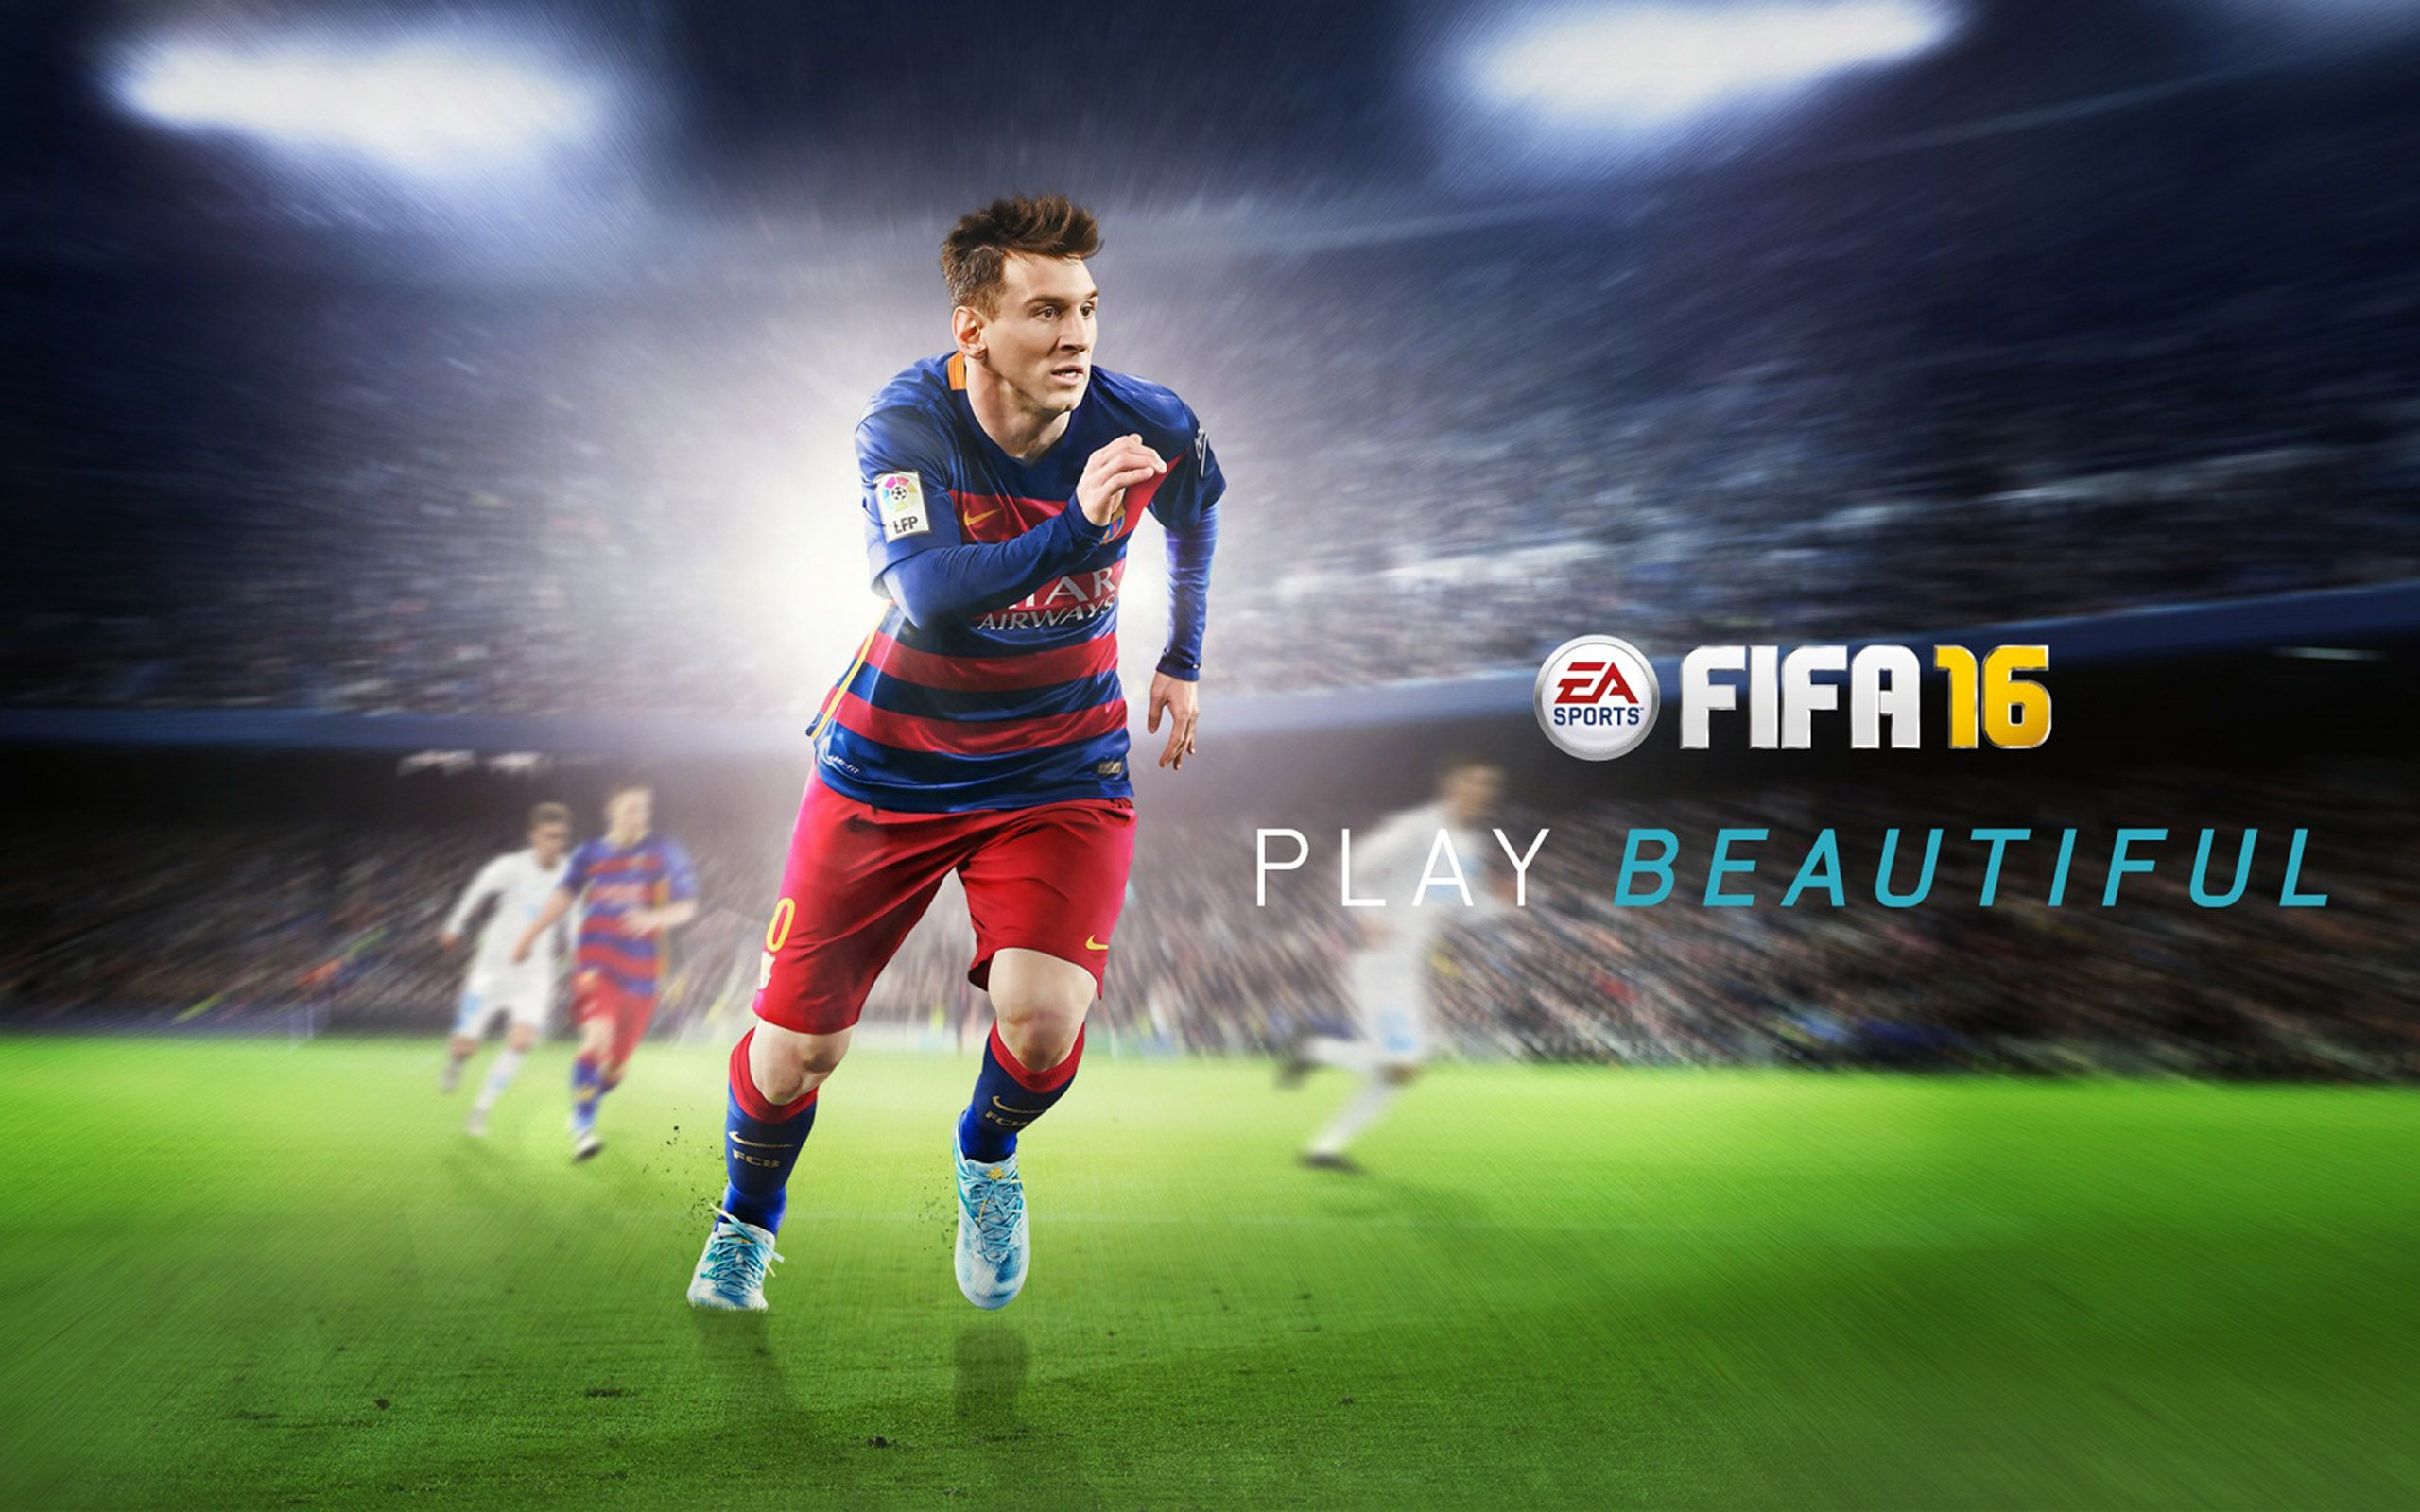 fifa 16 android download data